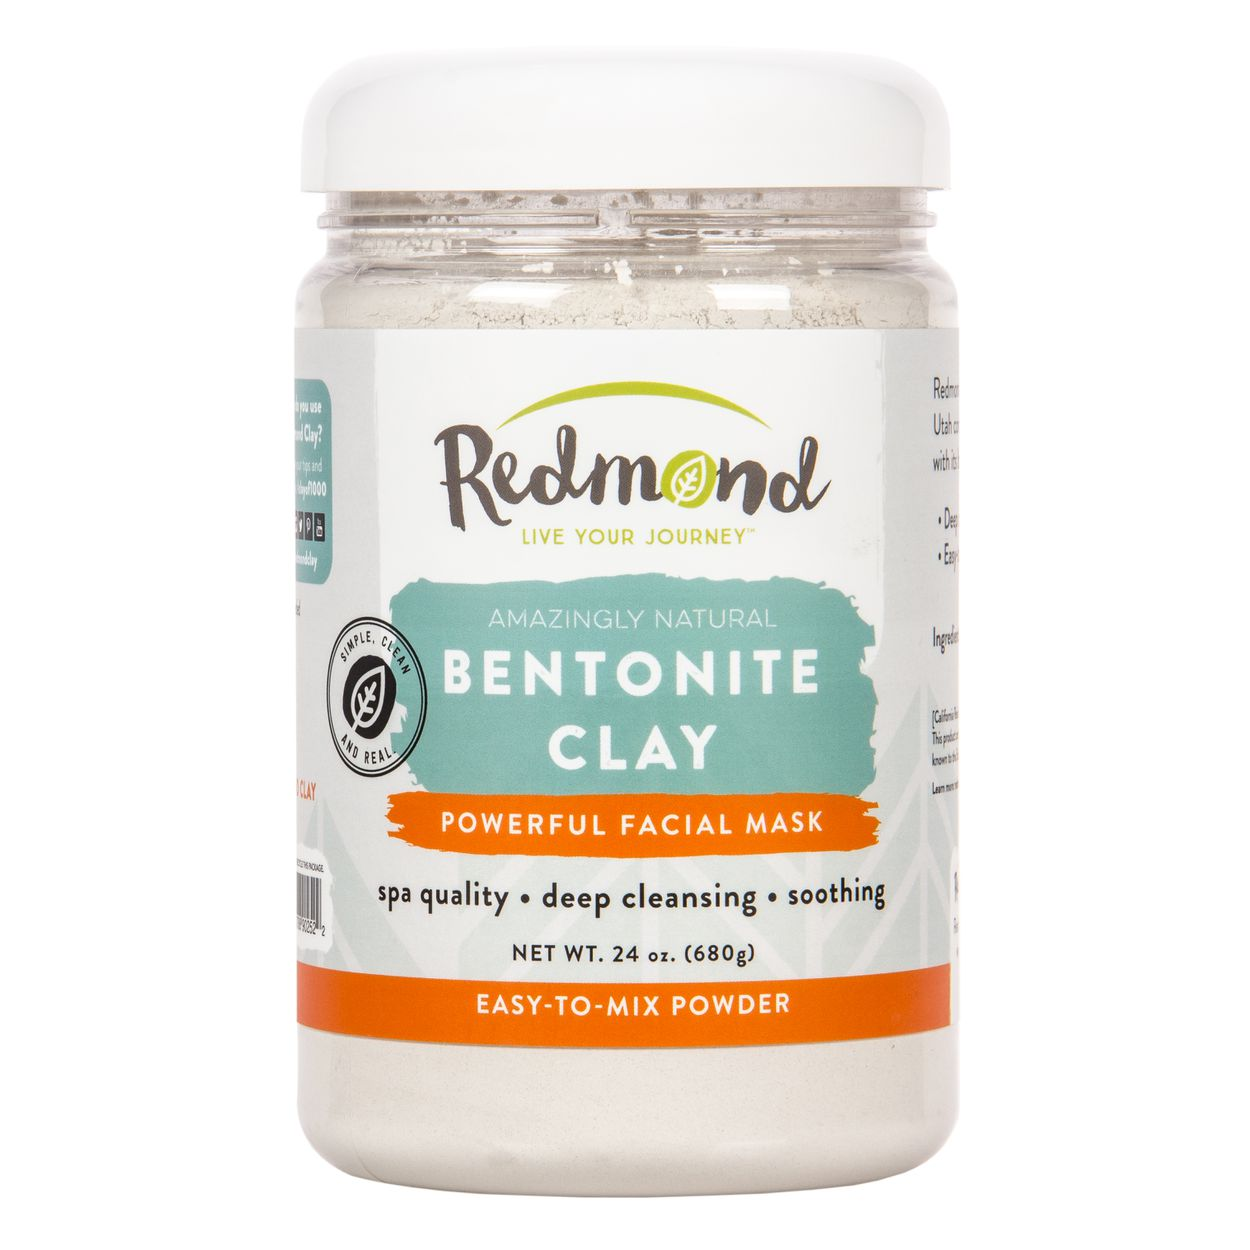 Amazingly Natural Bentonite Clay Facial Mask - 24 oz. by Redmond Trading (pack of 3) Alpha Light Skin Bright Mask, 2 oz / 60 ml